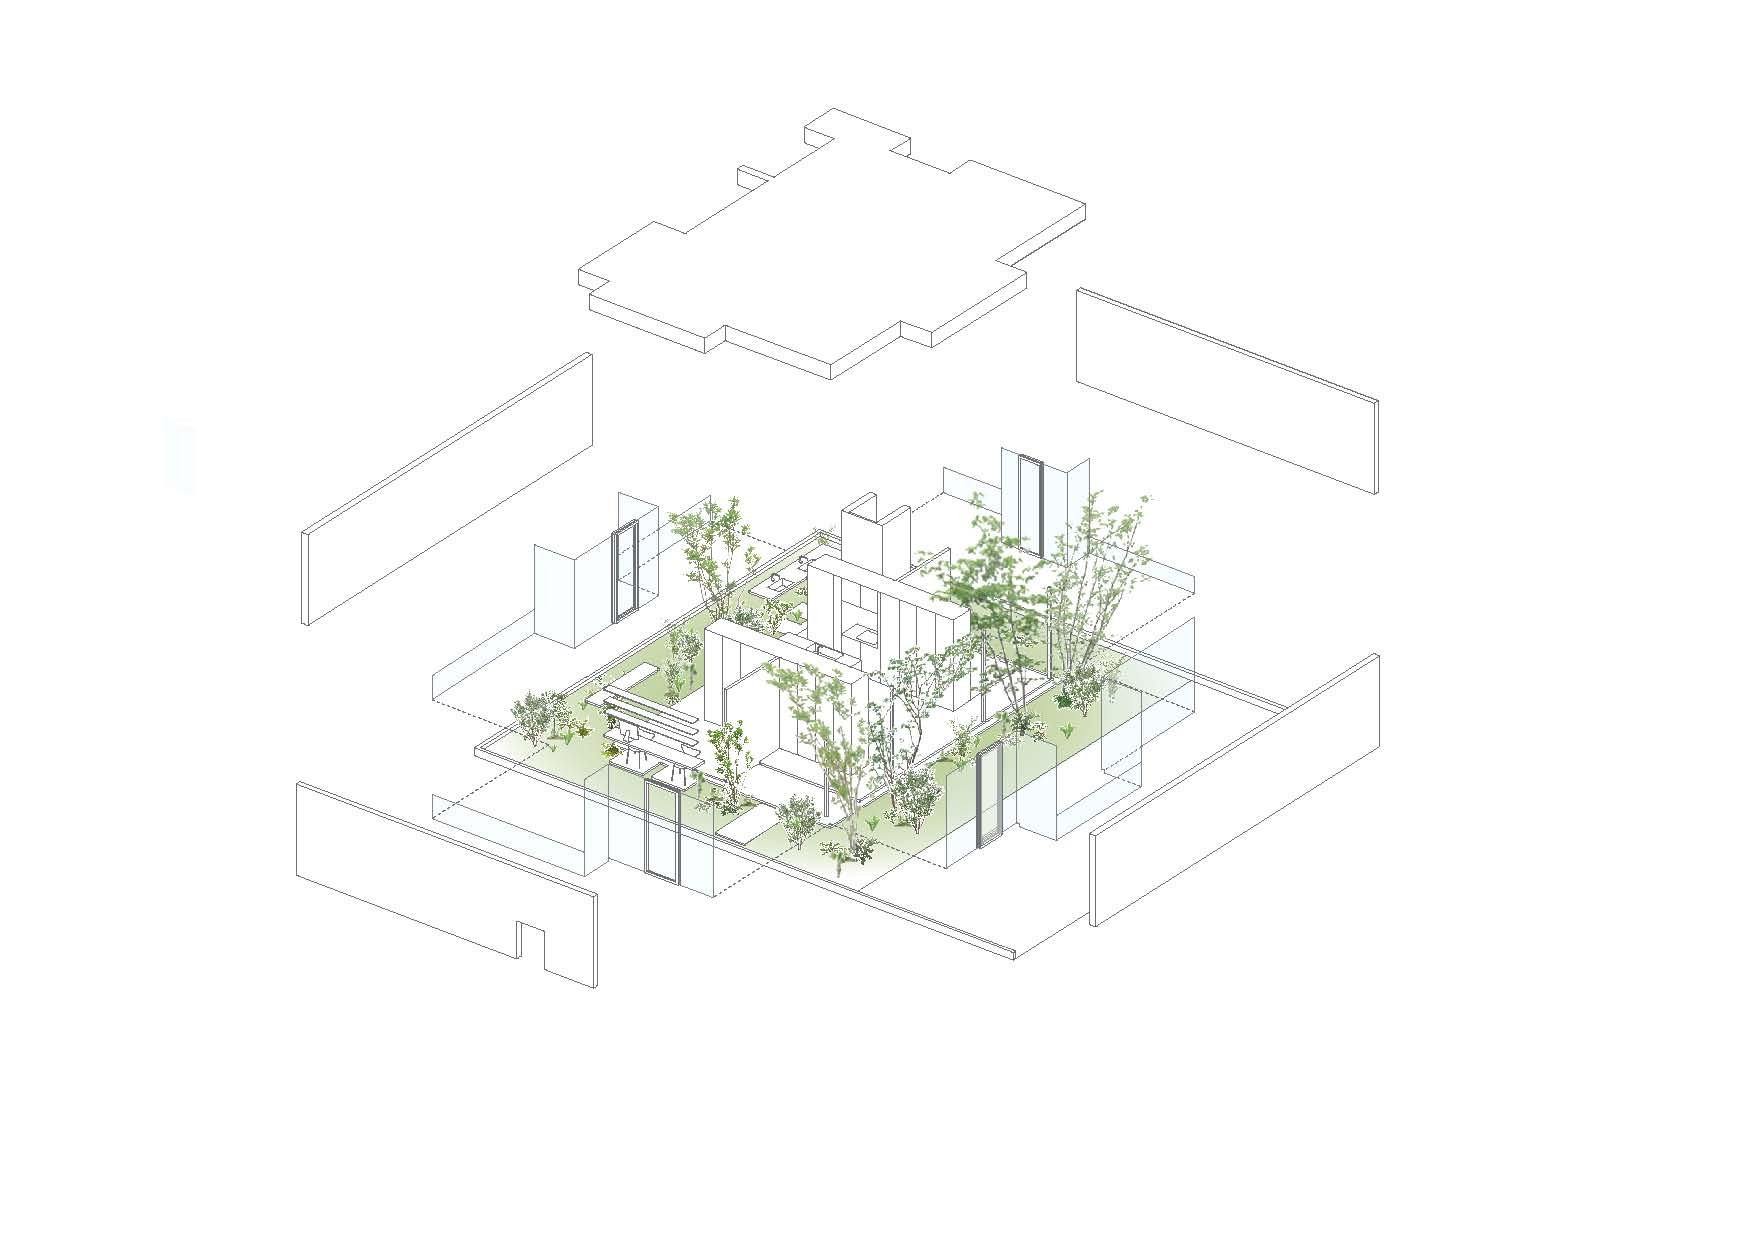 exploded axon diagram plant cell vs animal gallery of green edge house ma style architects 15